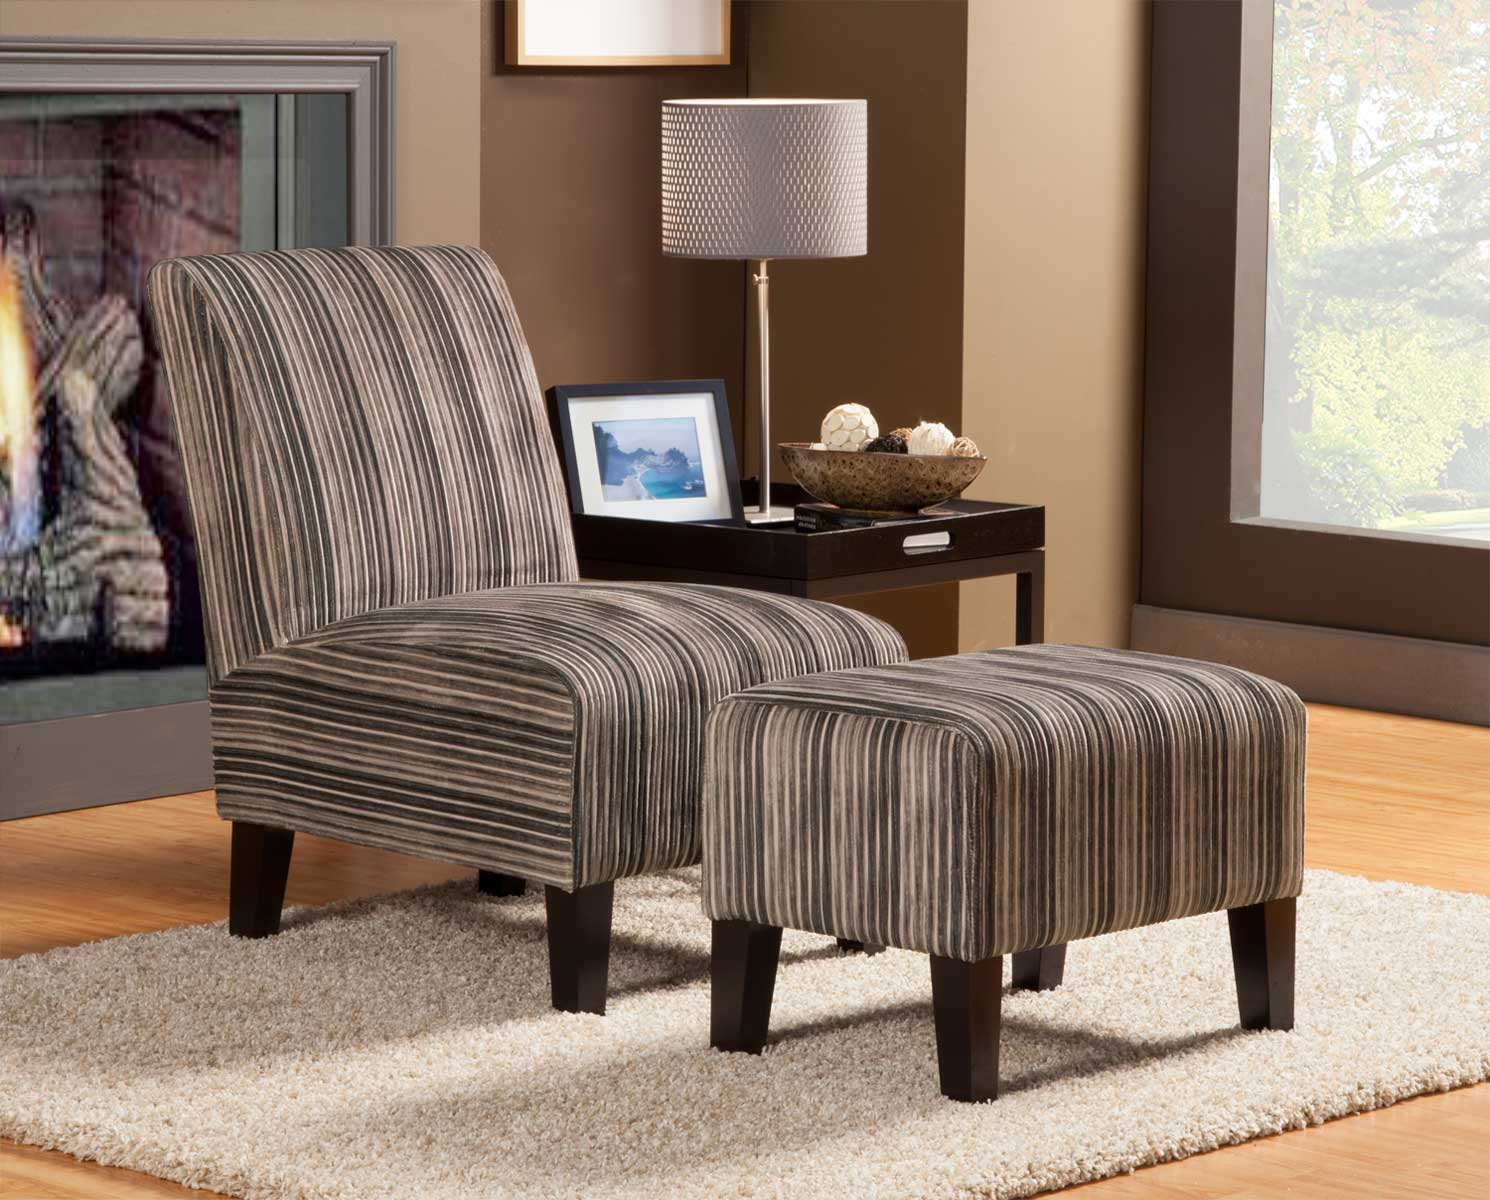 Homelegance Ione Accent Chair and Ottoman - Beige